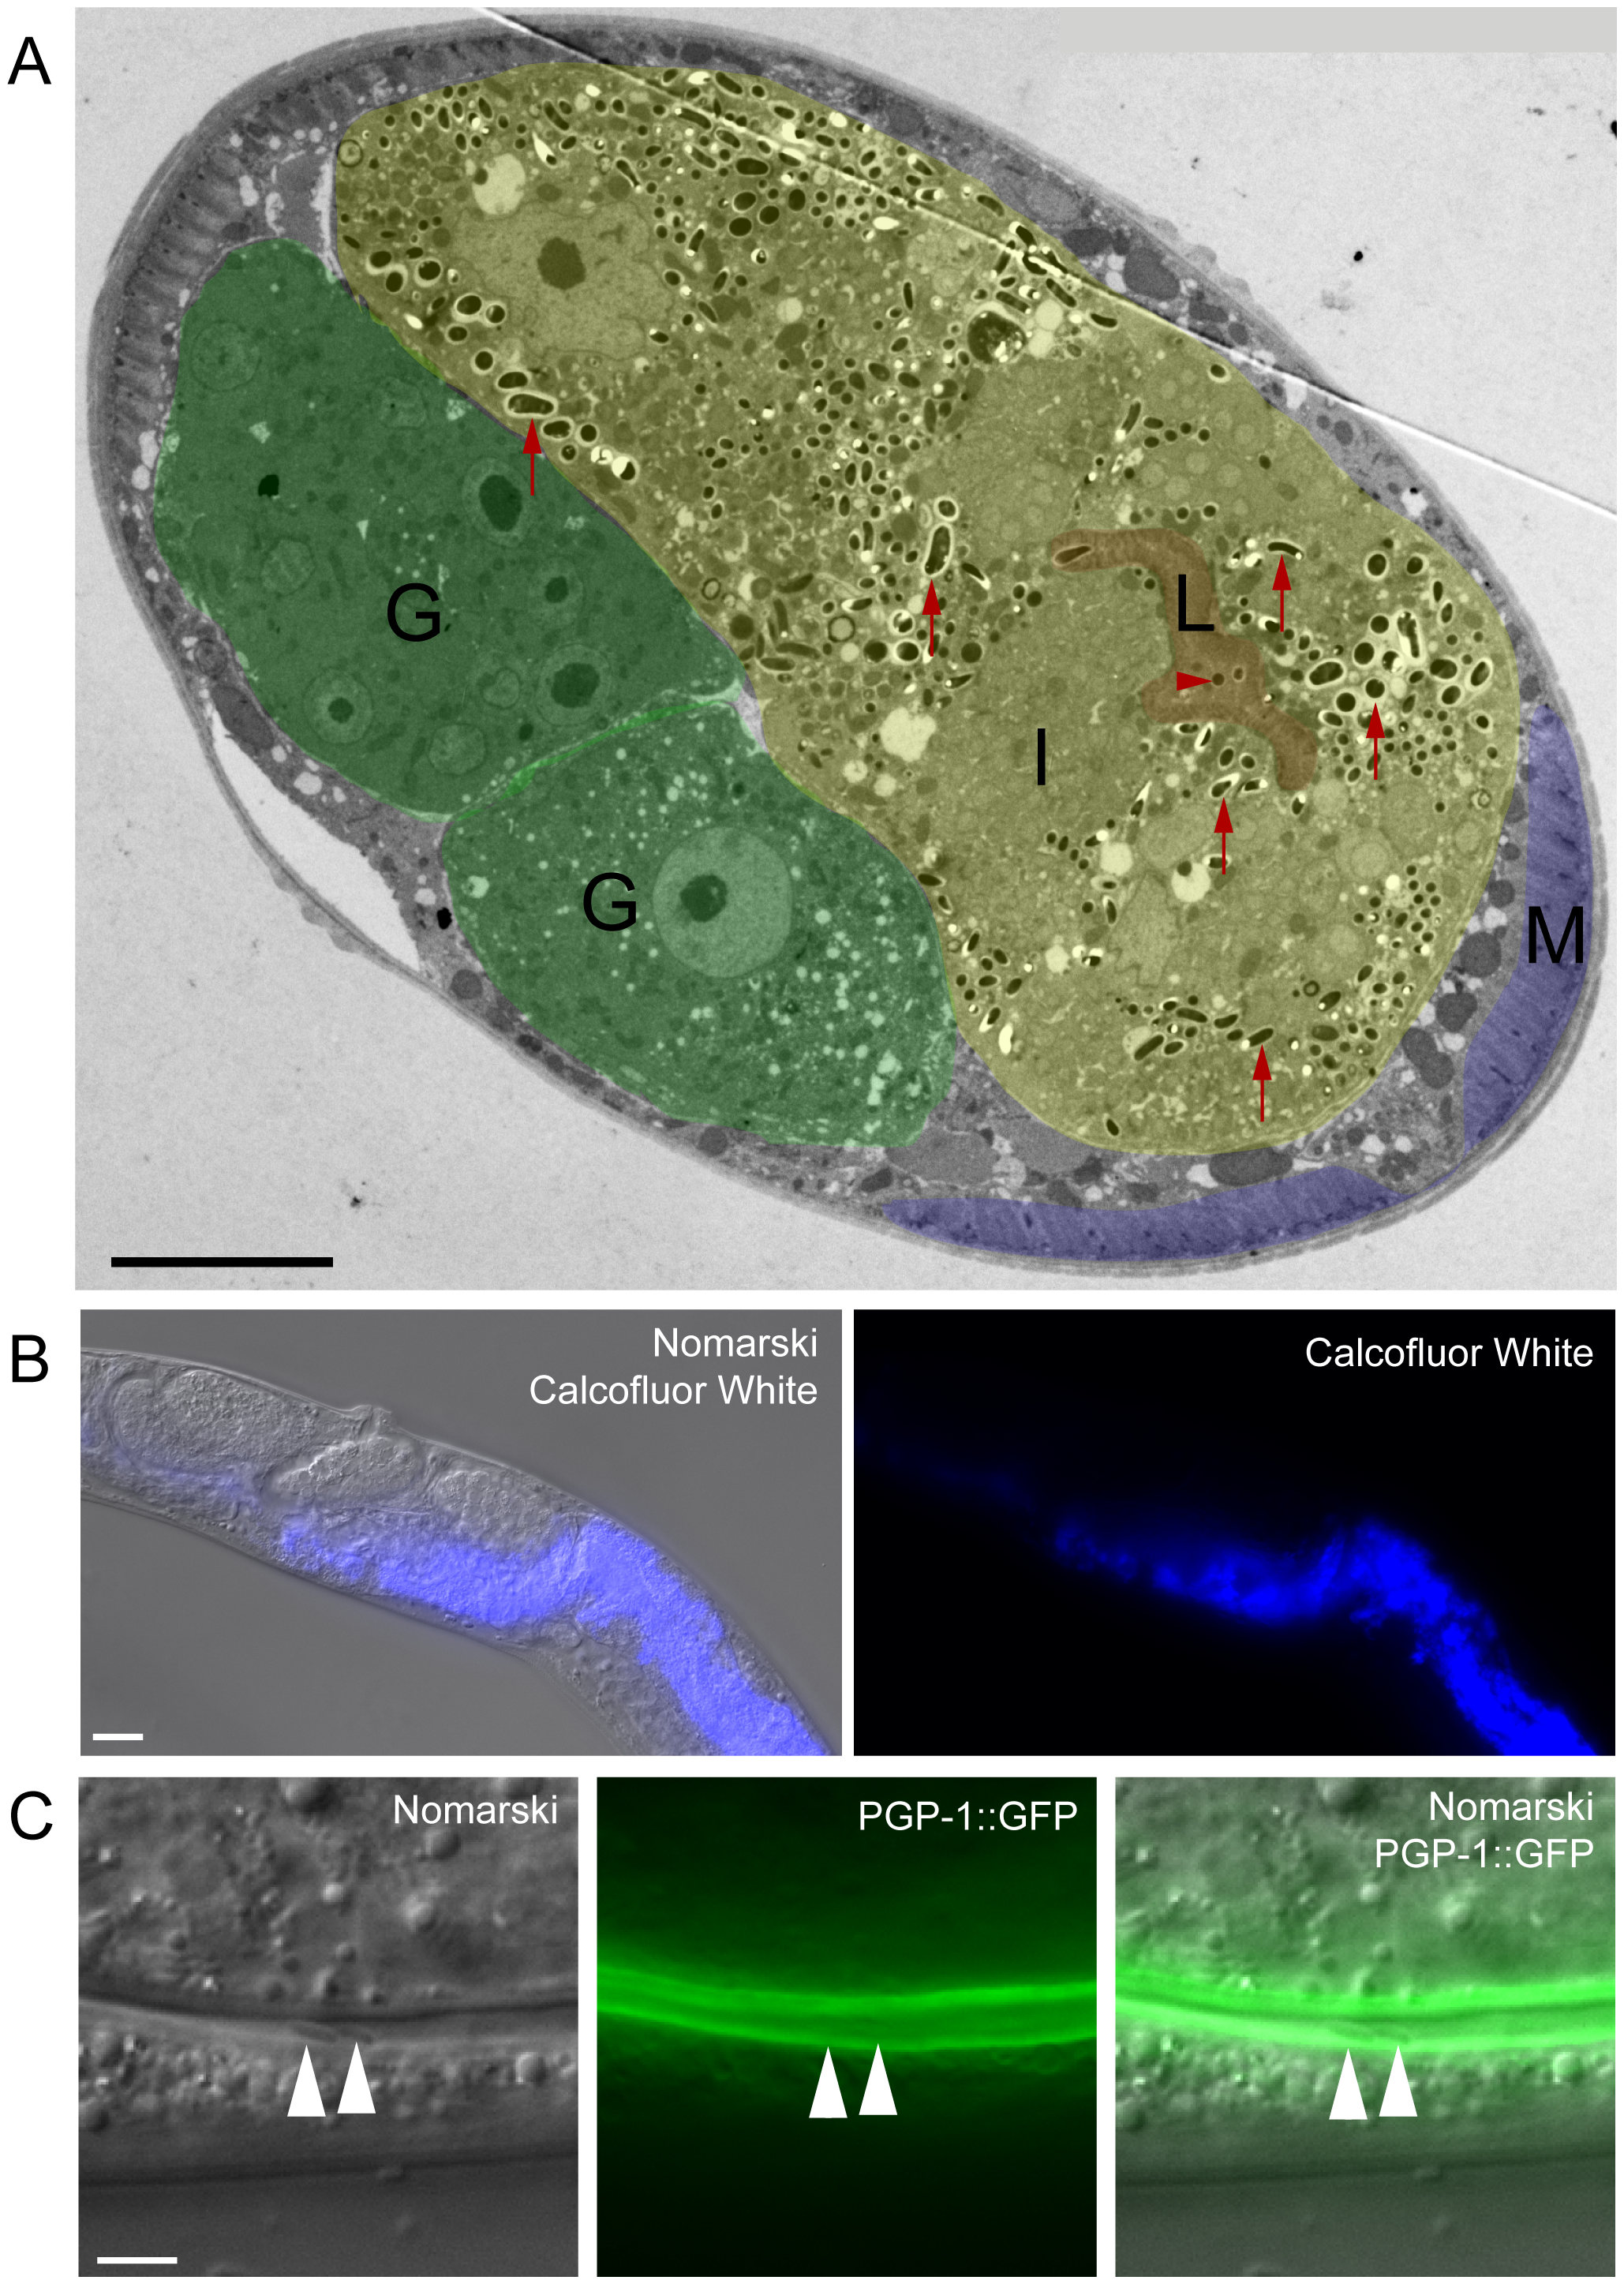 <i>N. parisii</i> spores exit apically out of intestinal cells and are not labeled with a <i>C. elegans</i> membrane marker.